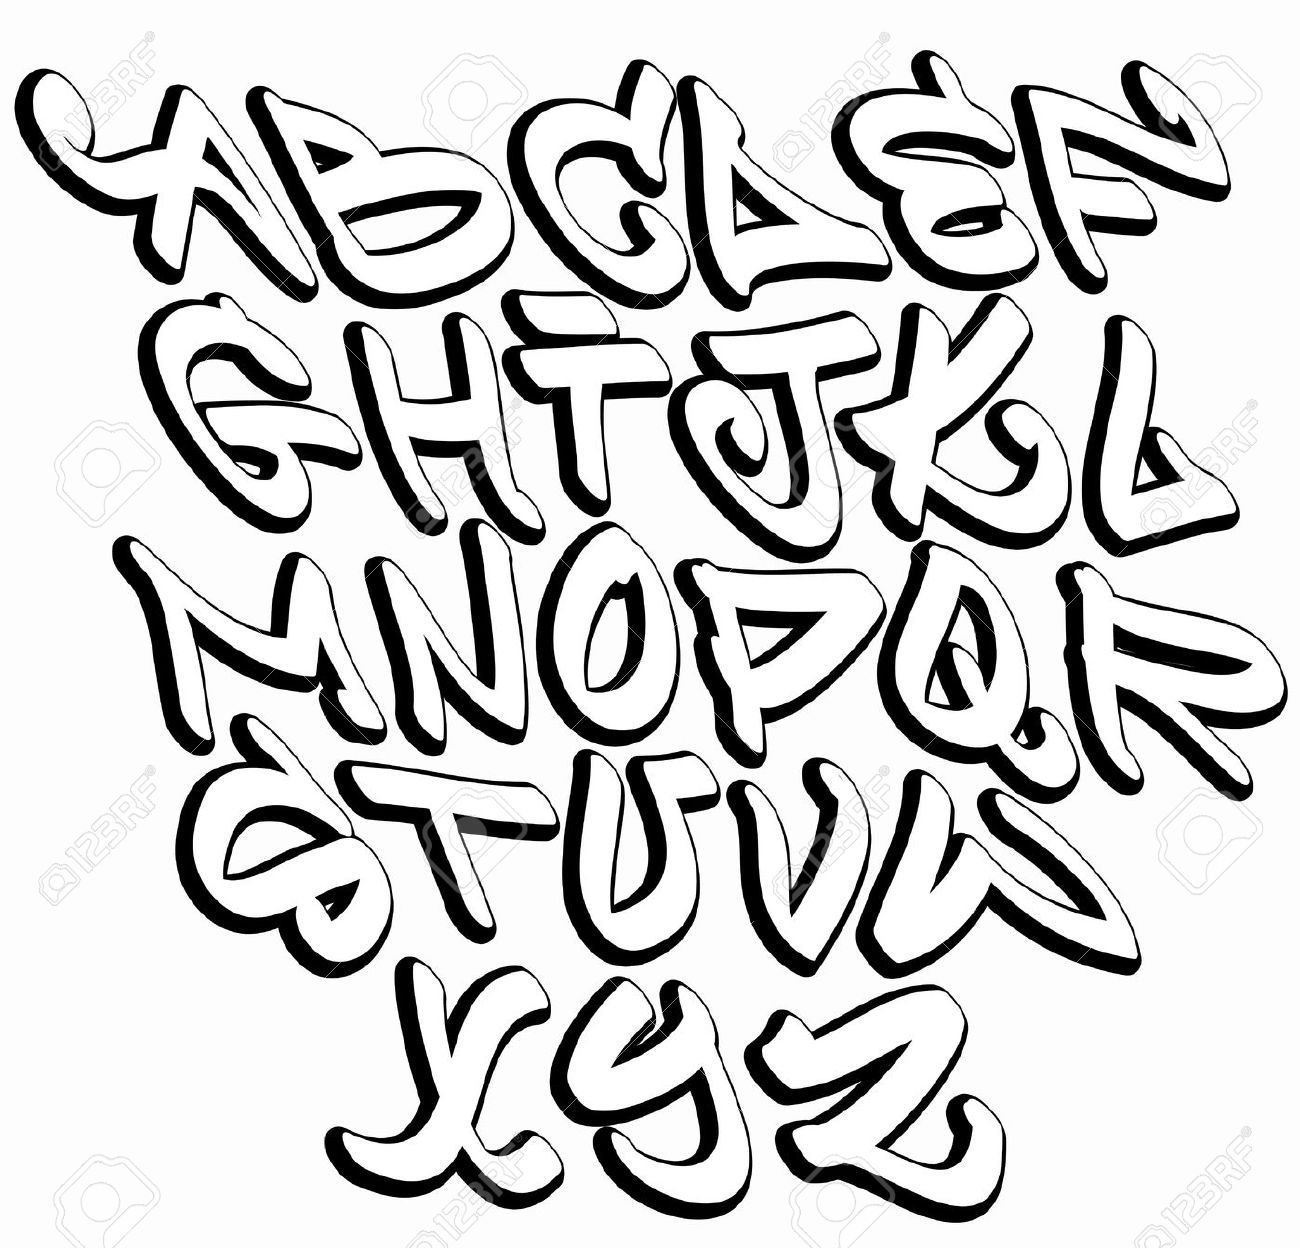 Cool Graffiti Font To Draw Collection